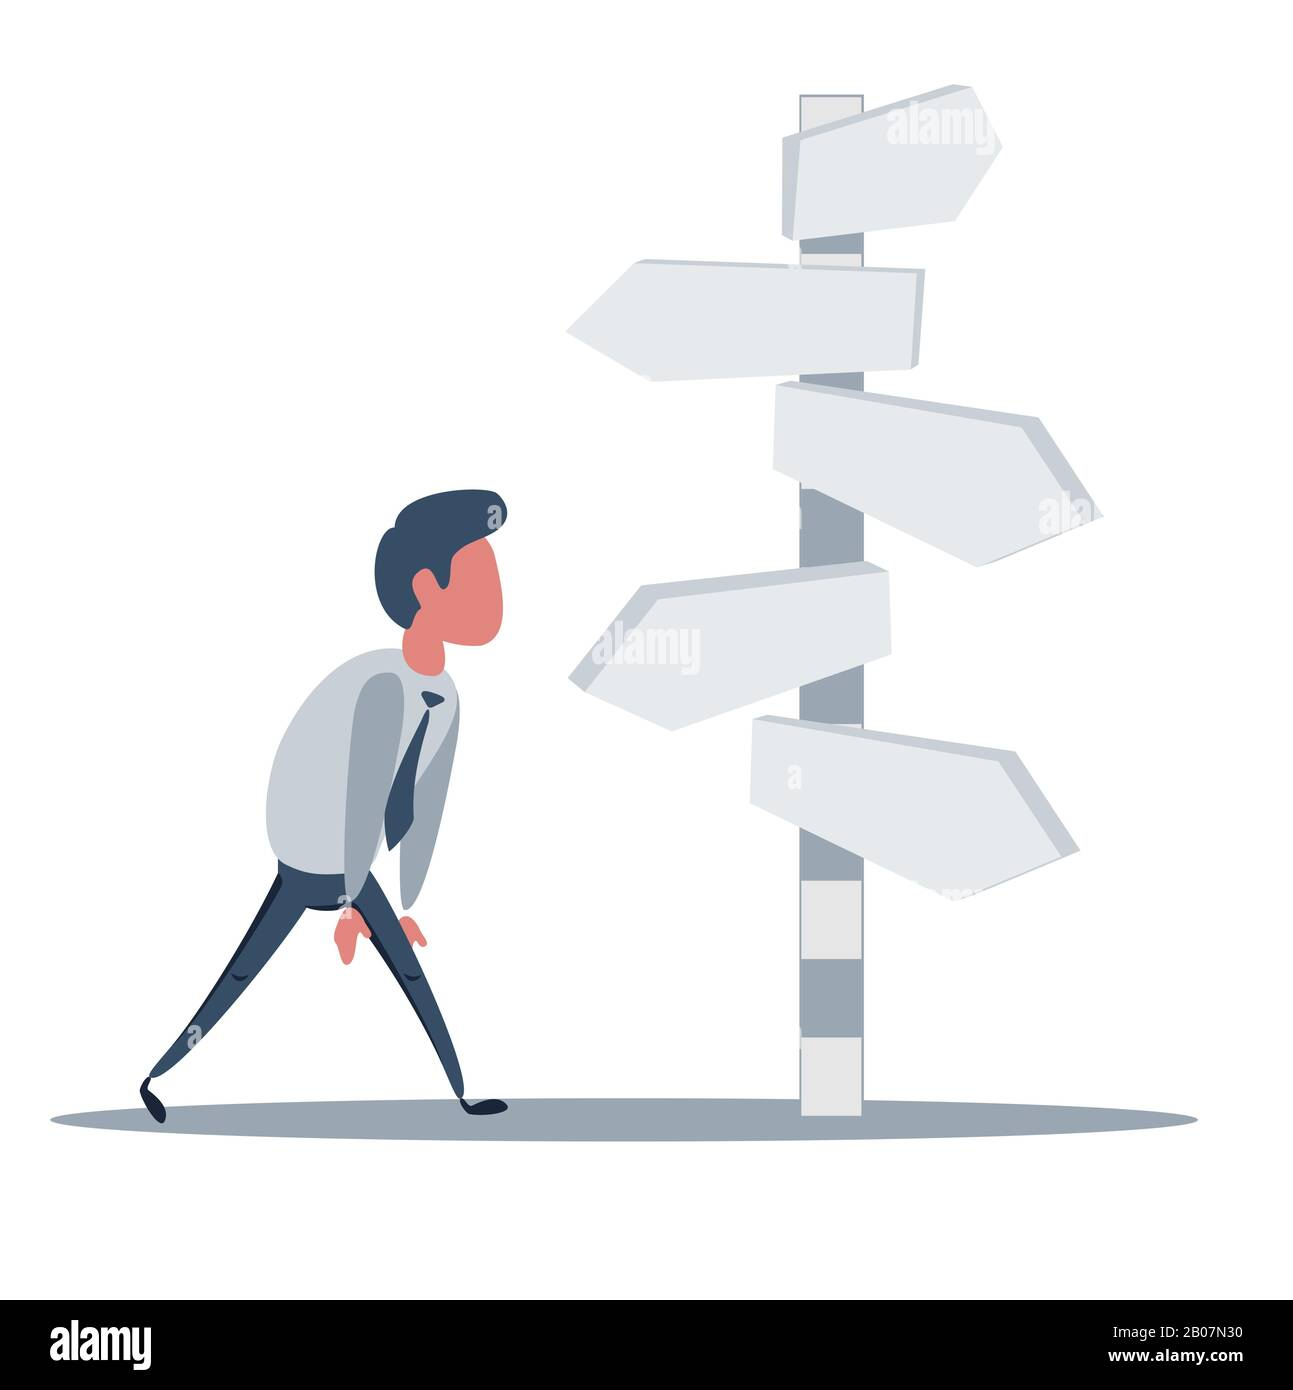 Businessman is looking at direction signs. Choices and decision concept. Stock Vector